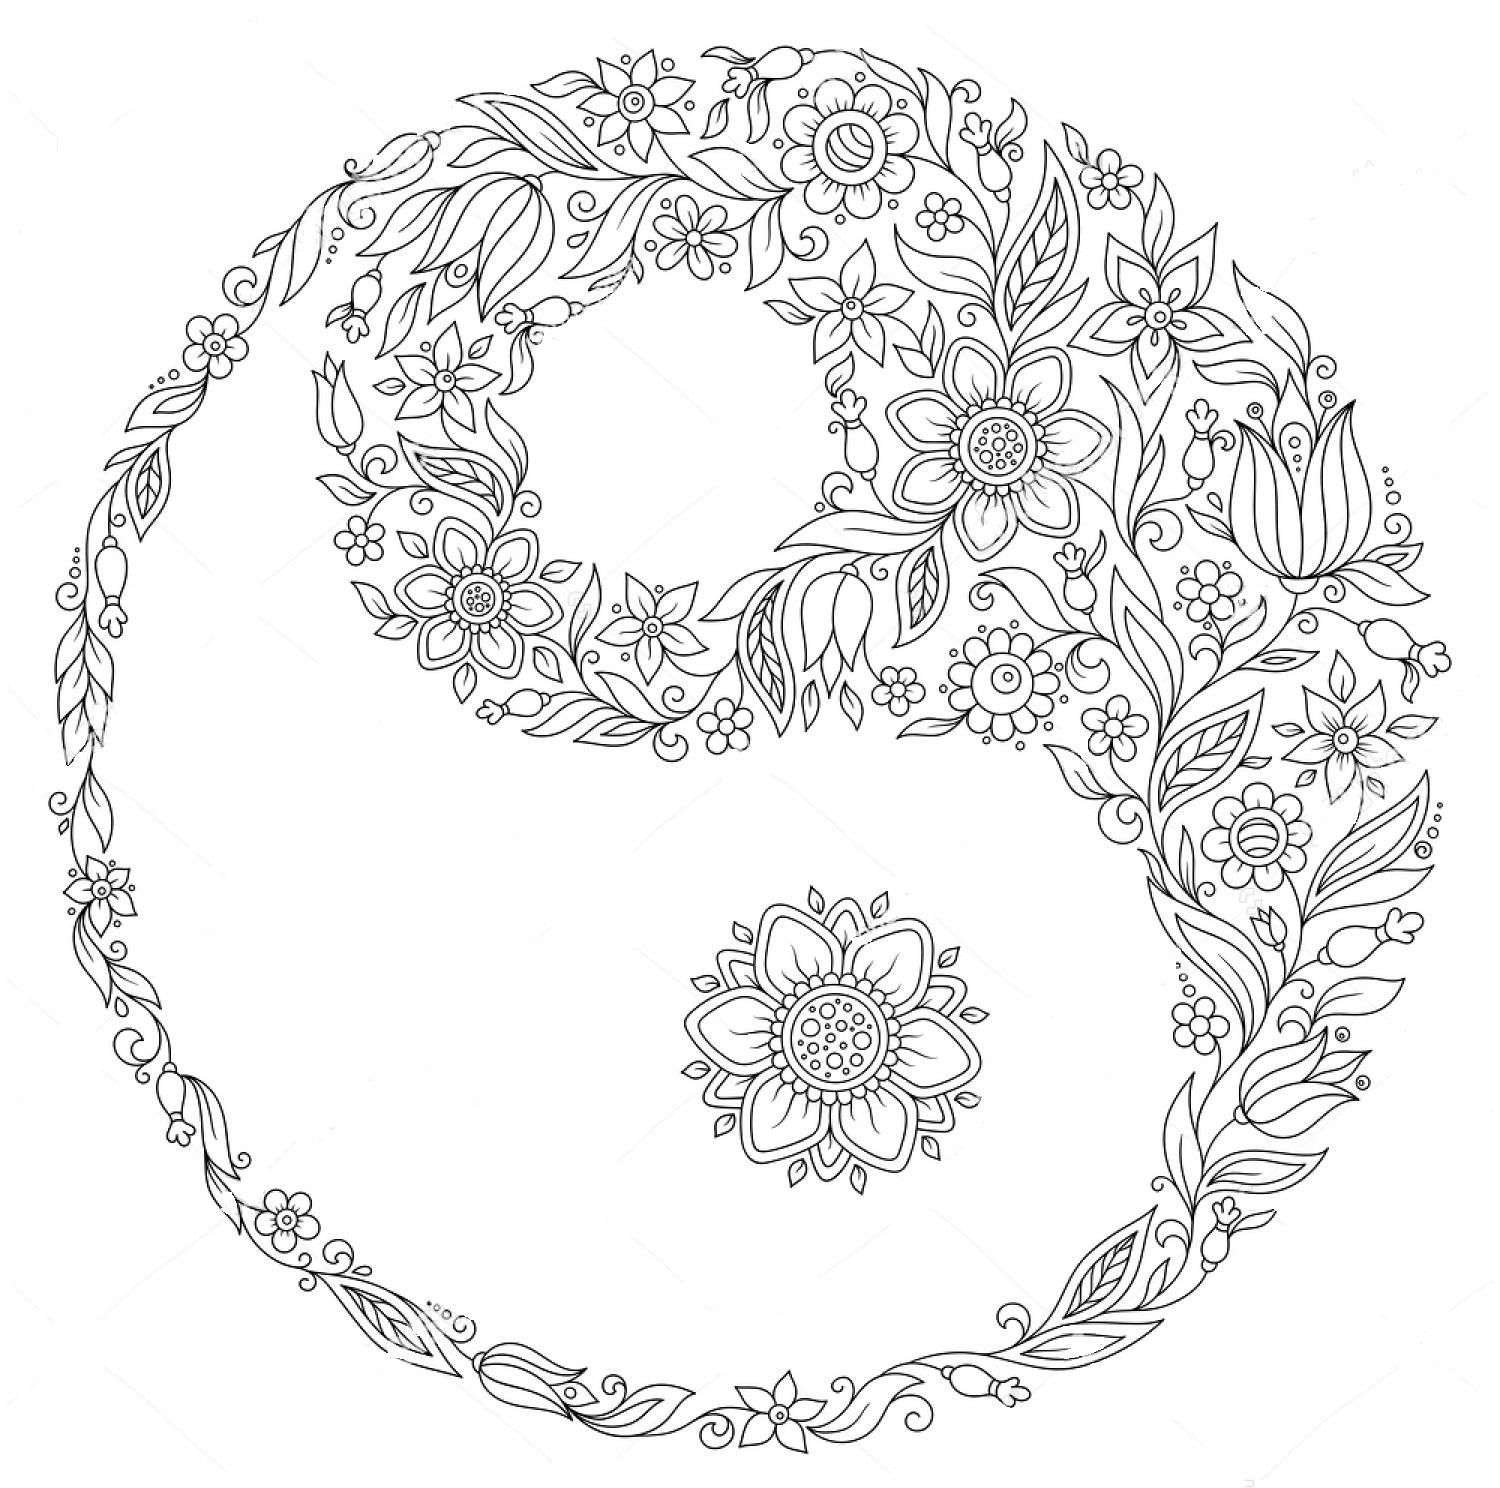 Yin yang drawing designs at free for for Ying yang coloring pages